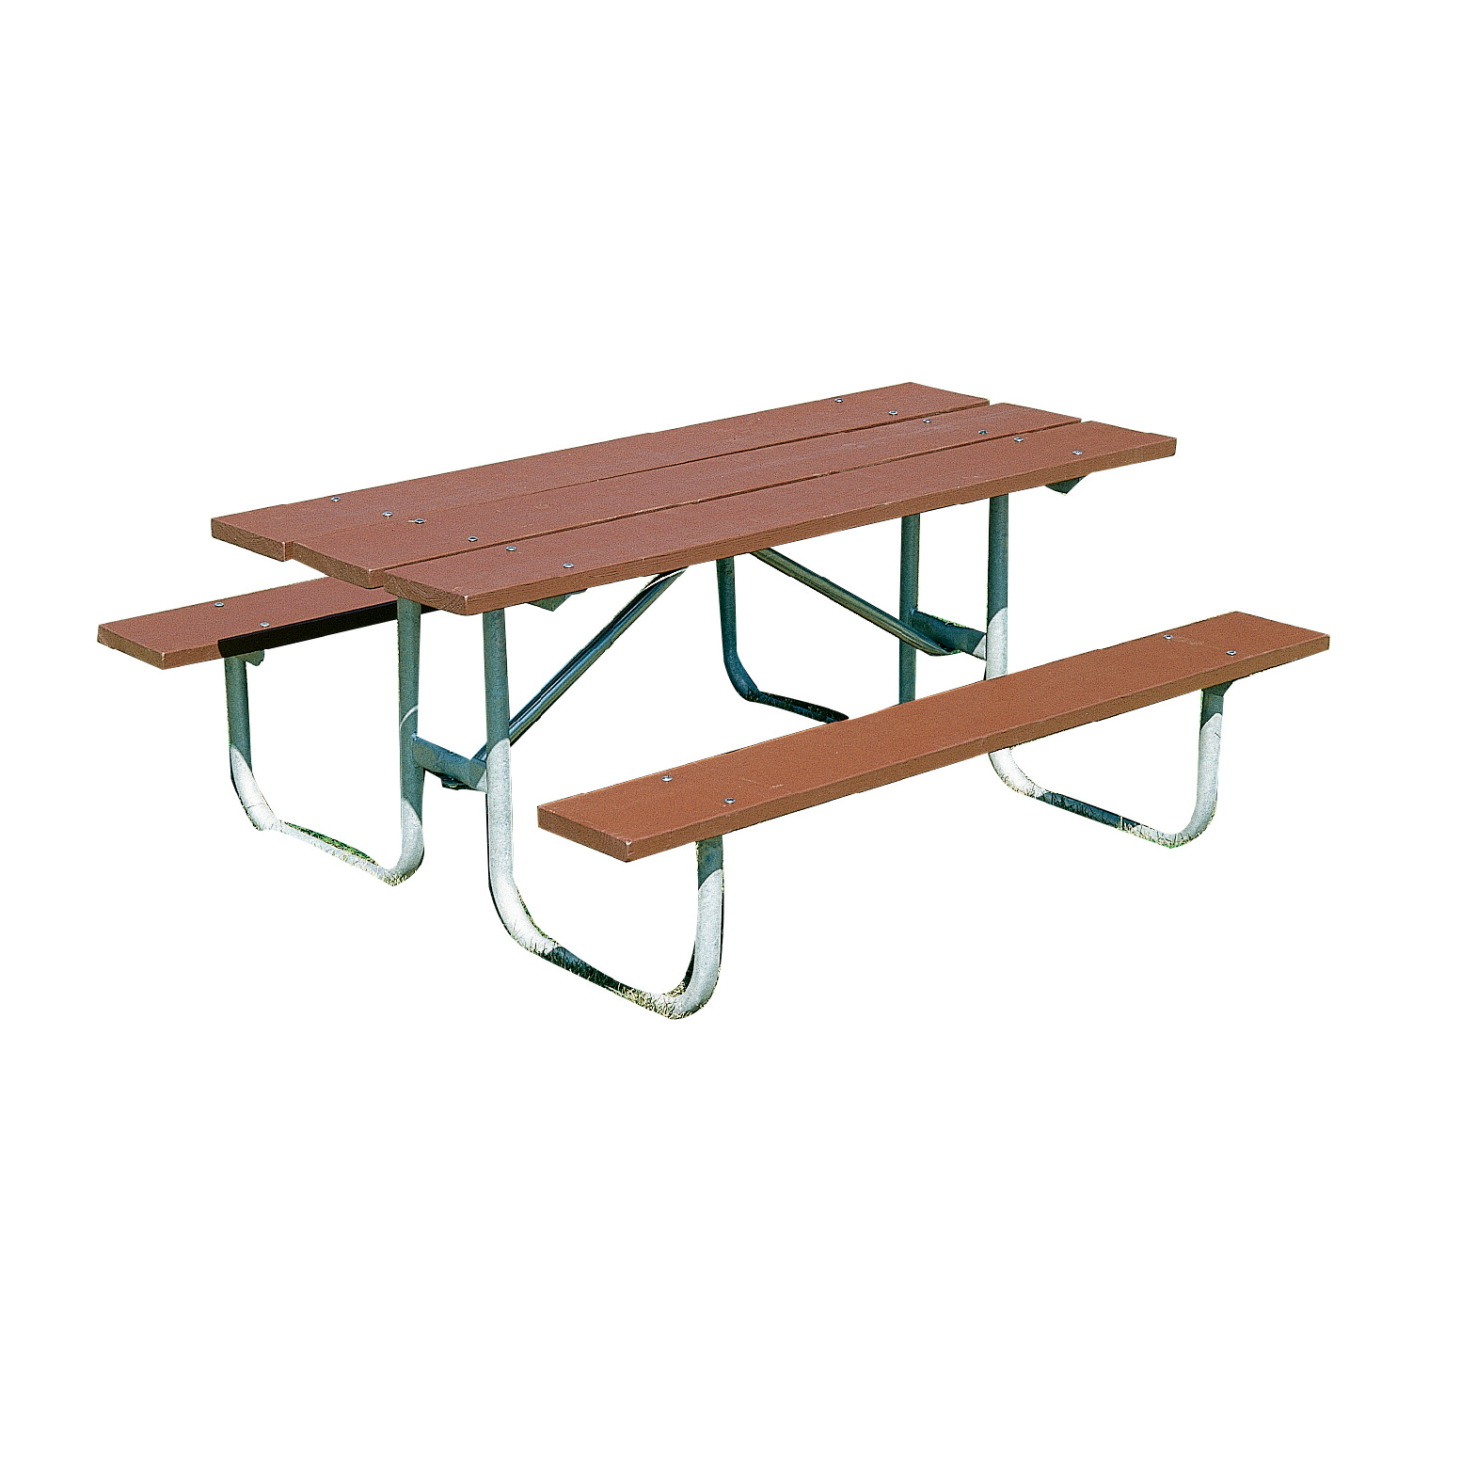 UltraSite Heavy Duty Recycled Plastic Top Picnic Table, 72 x 64-3/4 x 31-9/16 Inches, Various Options